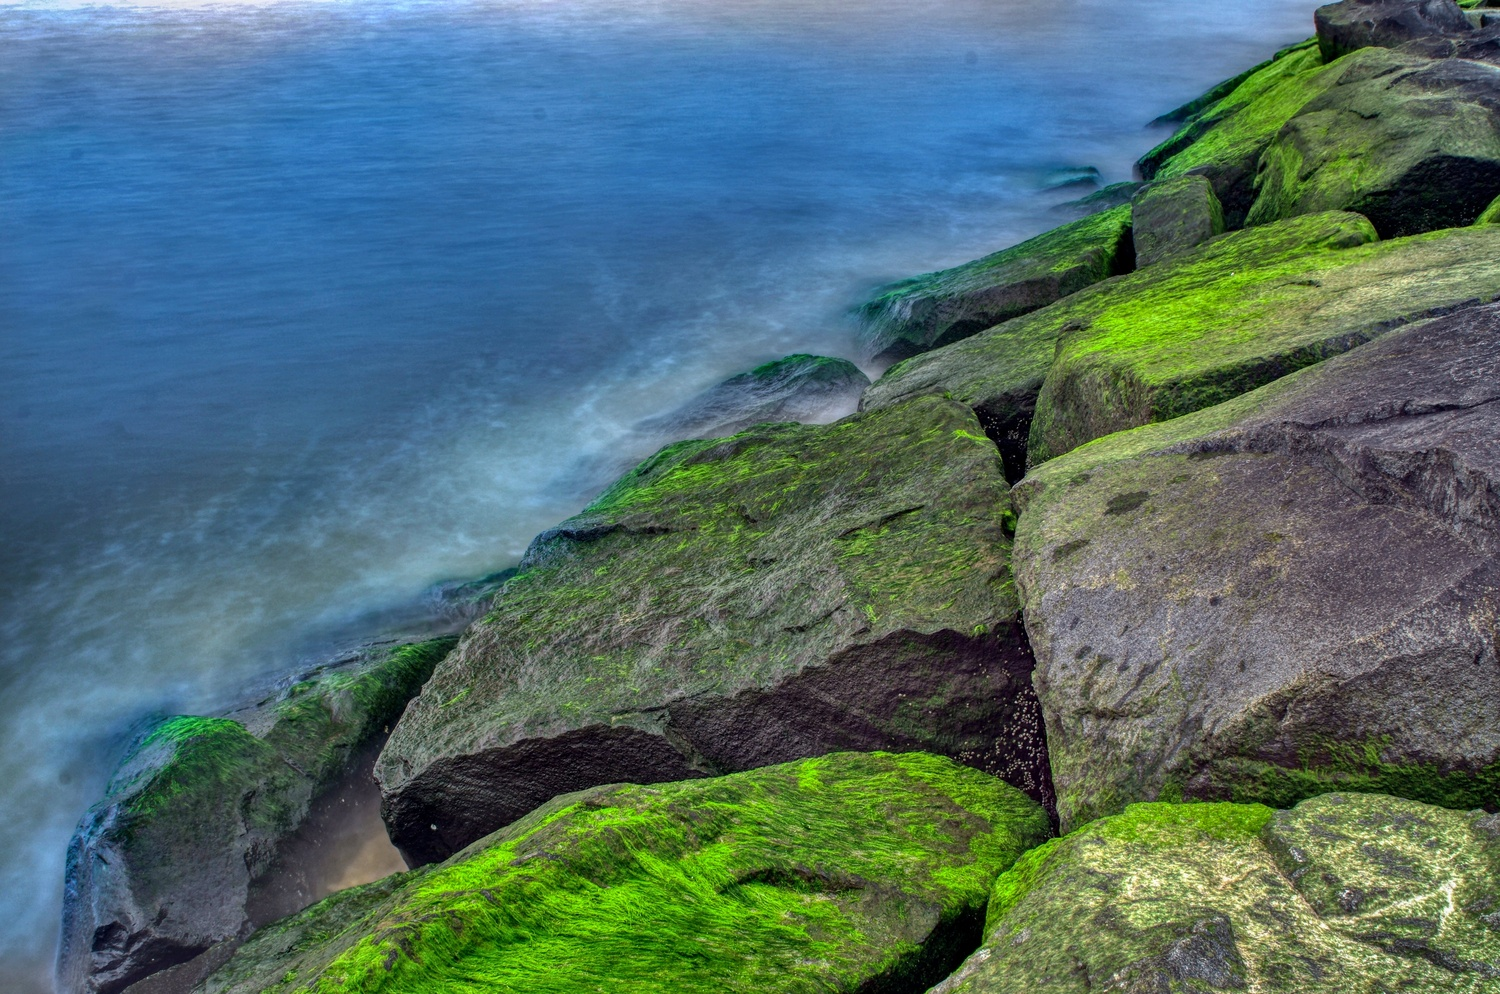 Green Space at The Beach by Reed Page